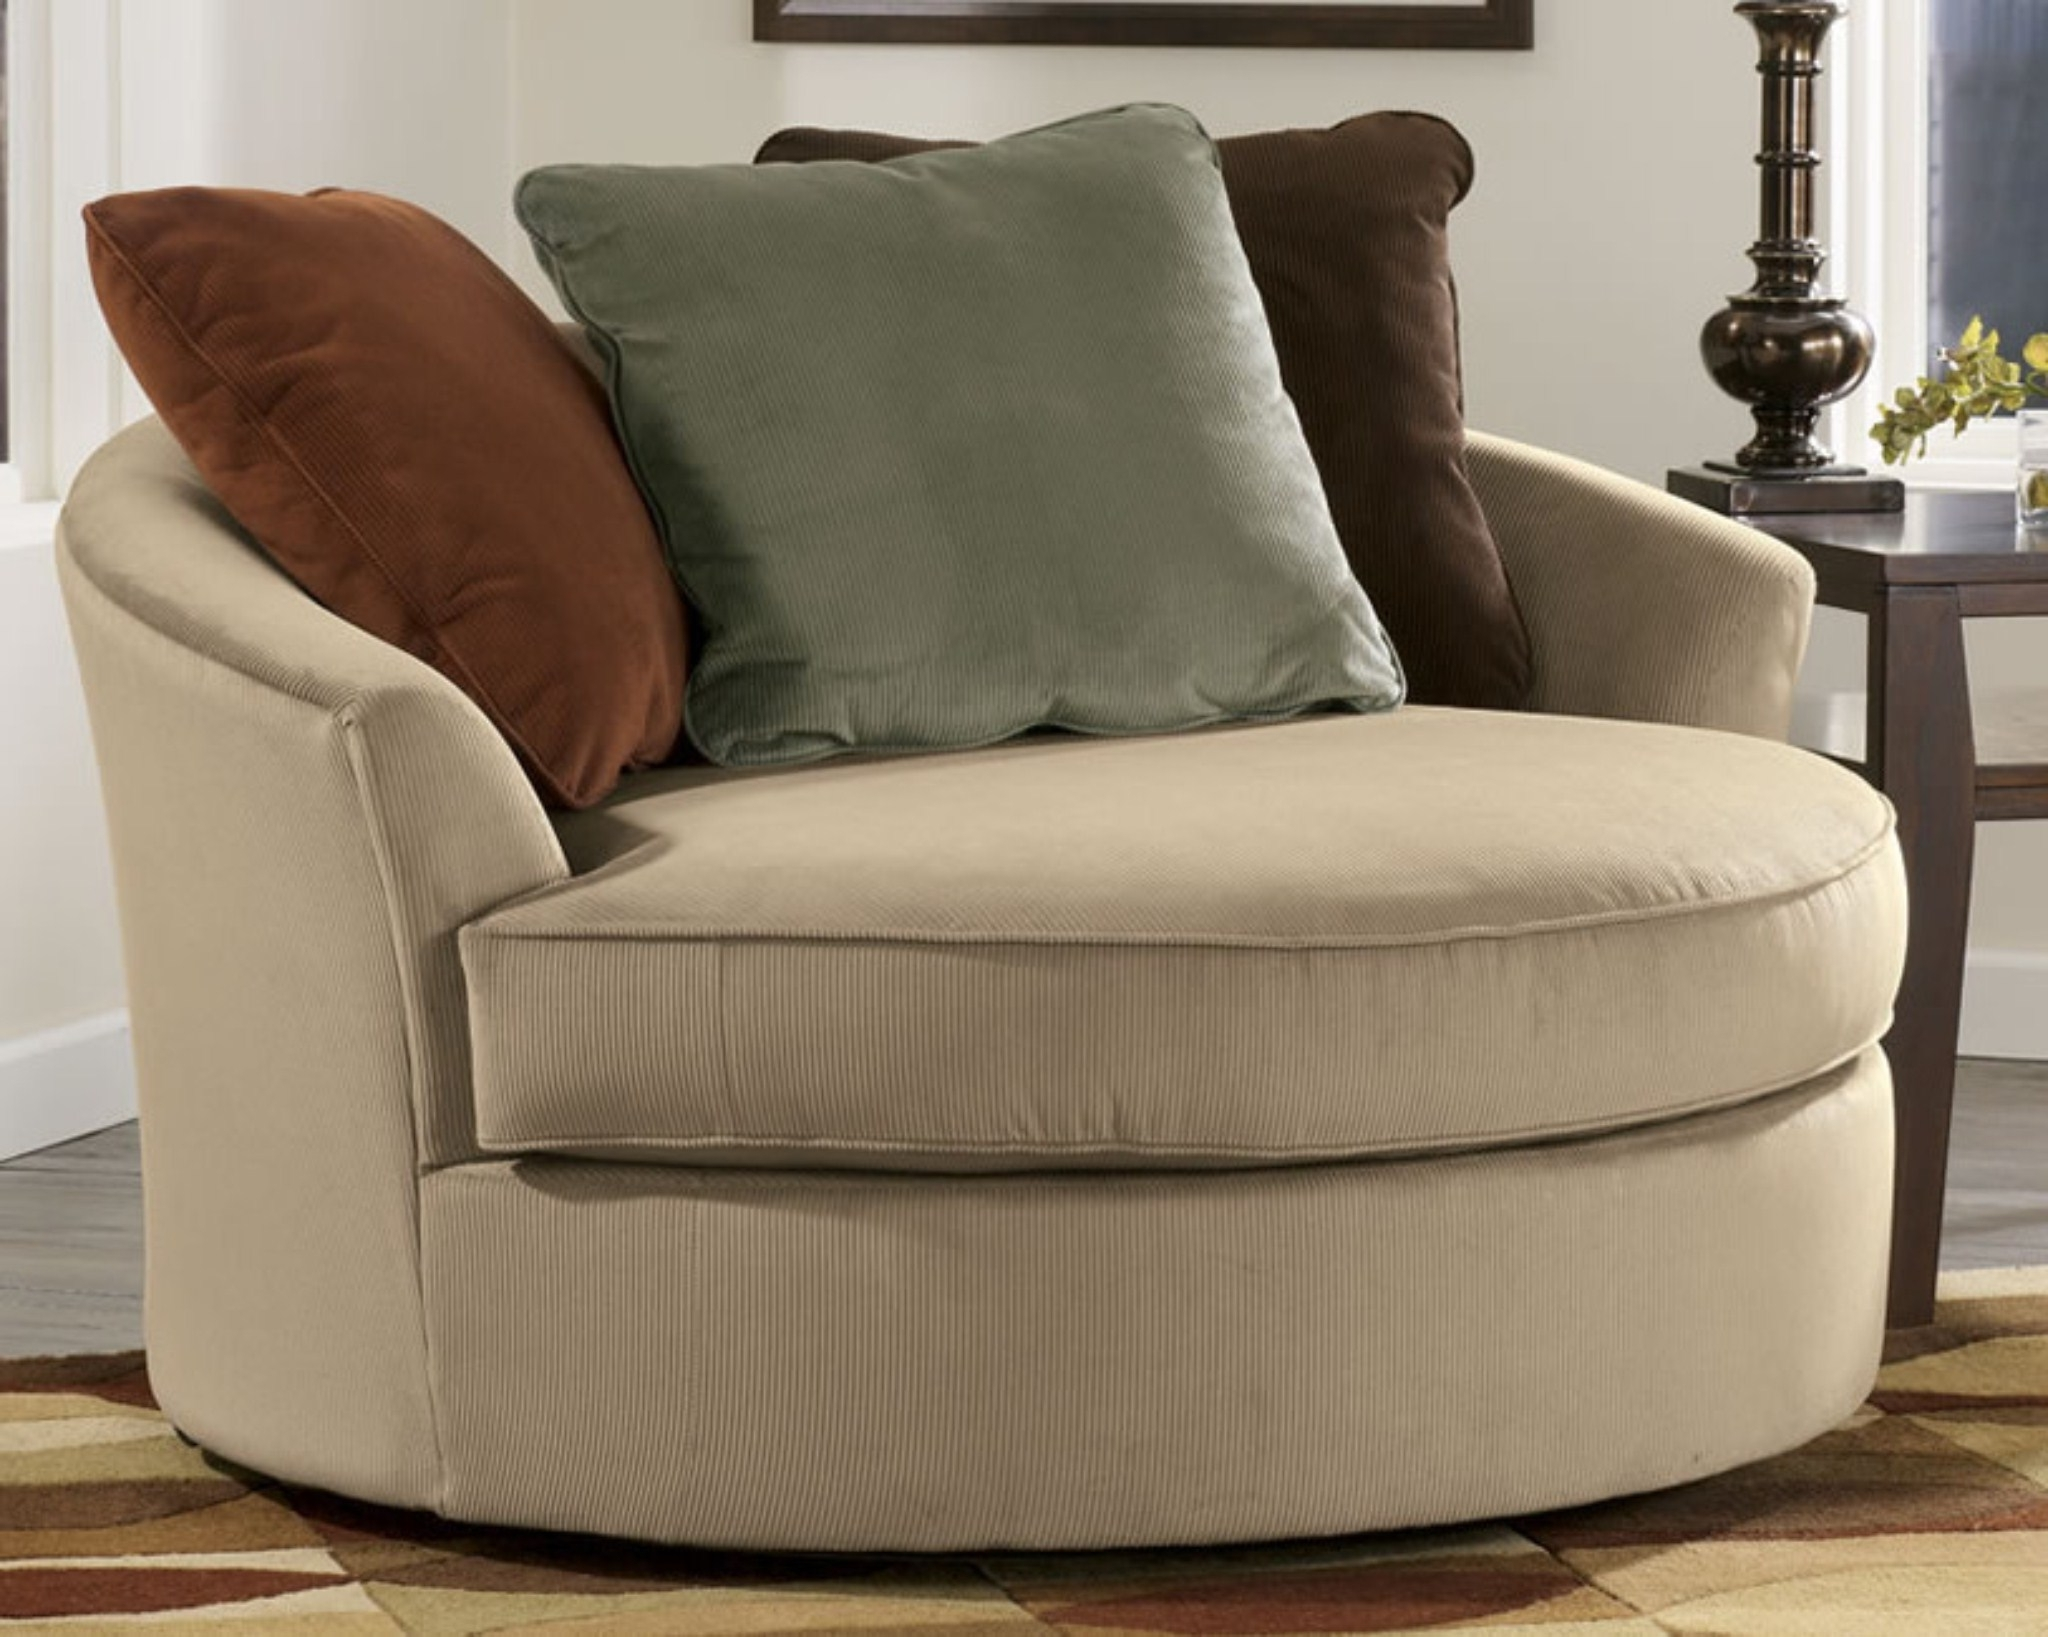 Round Swivel Sofa Chairs Intended For Latest Sofa : Luxury Round Swivel Sofa Chair Latest Large With Crescent (View 10 of 15)